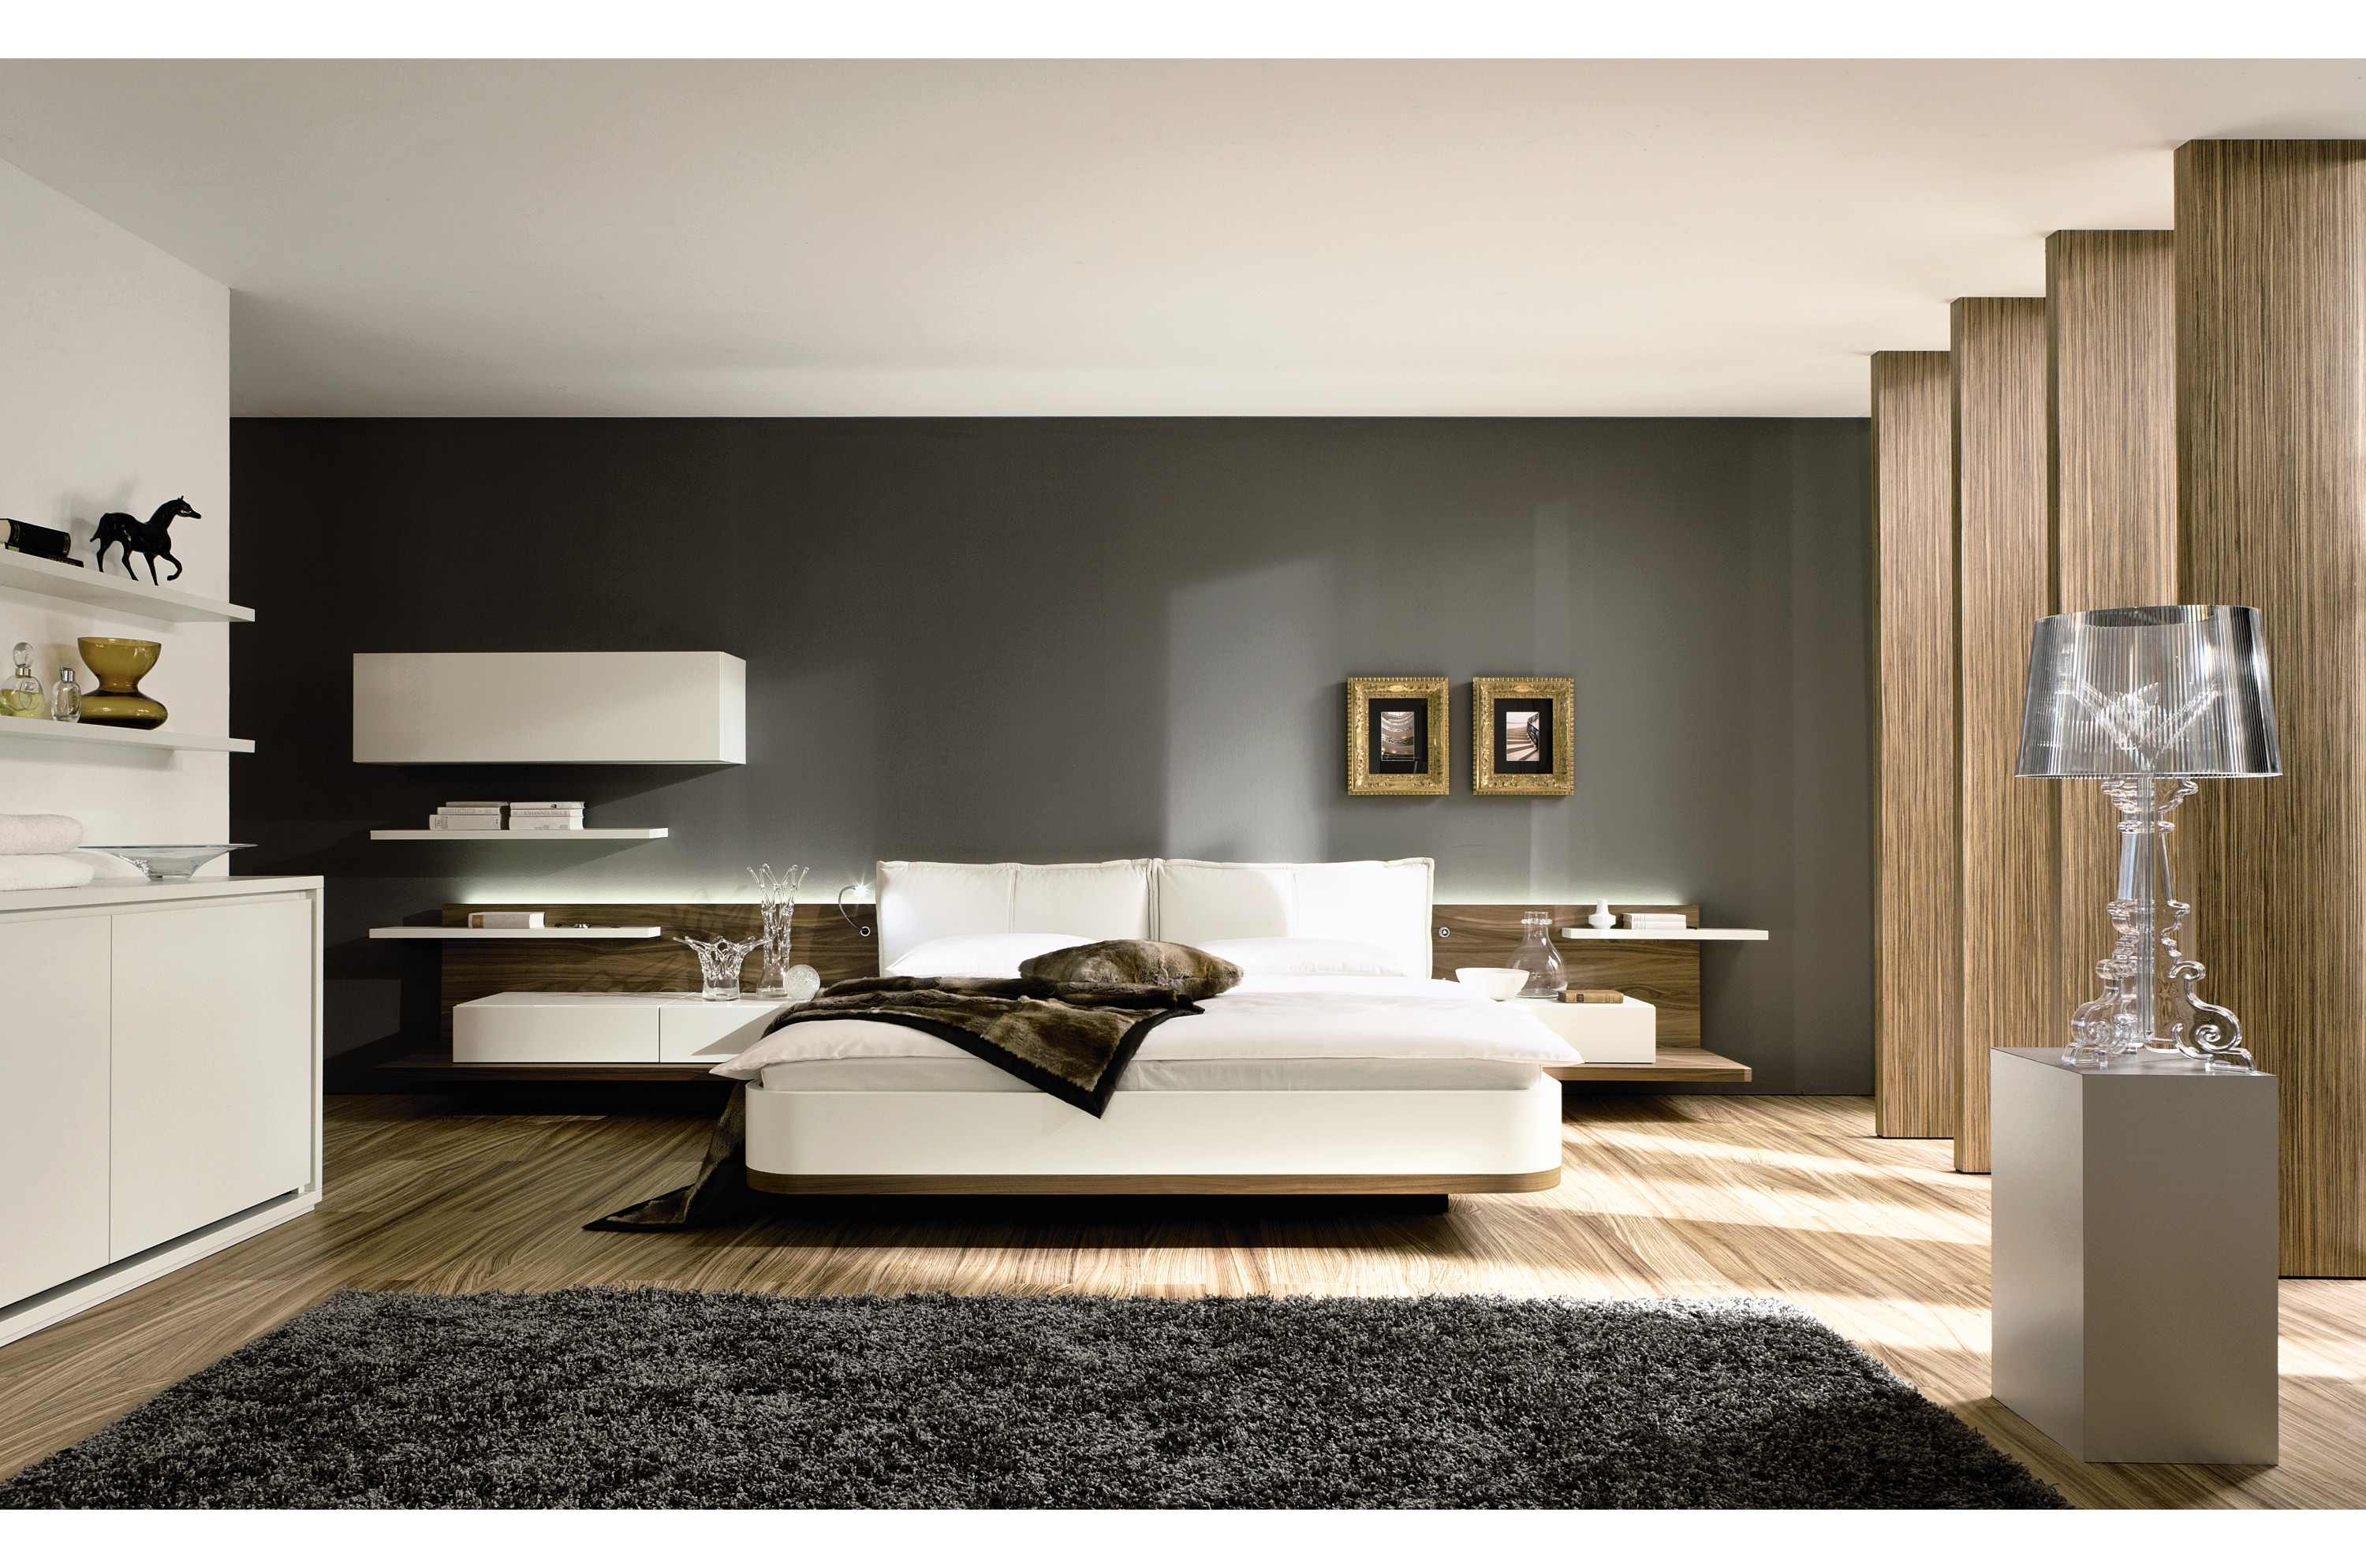 Modern bedroom innovation bedroom ideas interior design for New bedroom design ideas